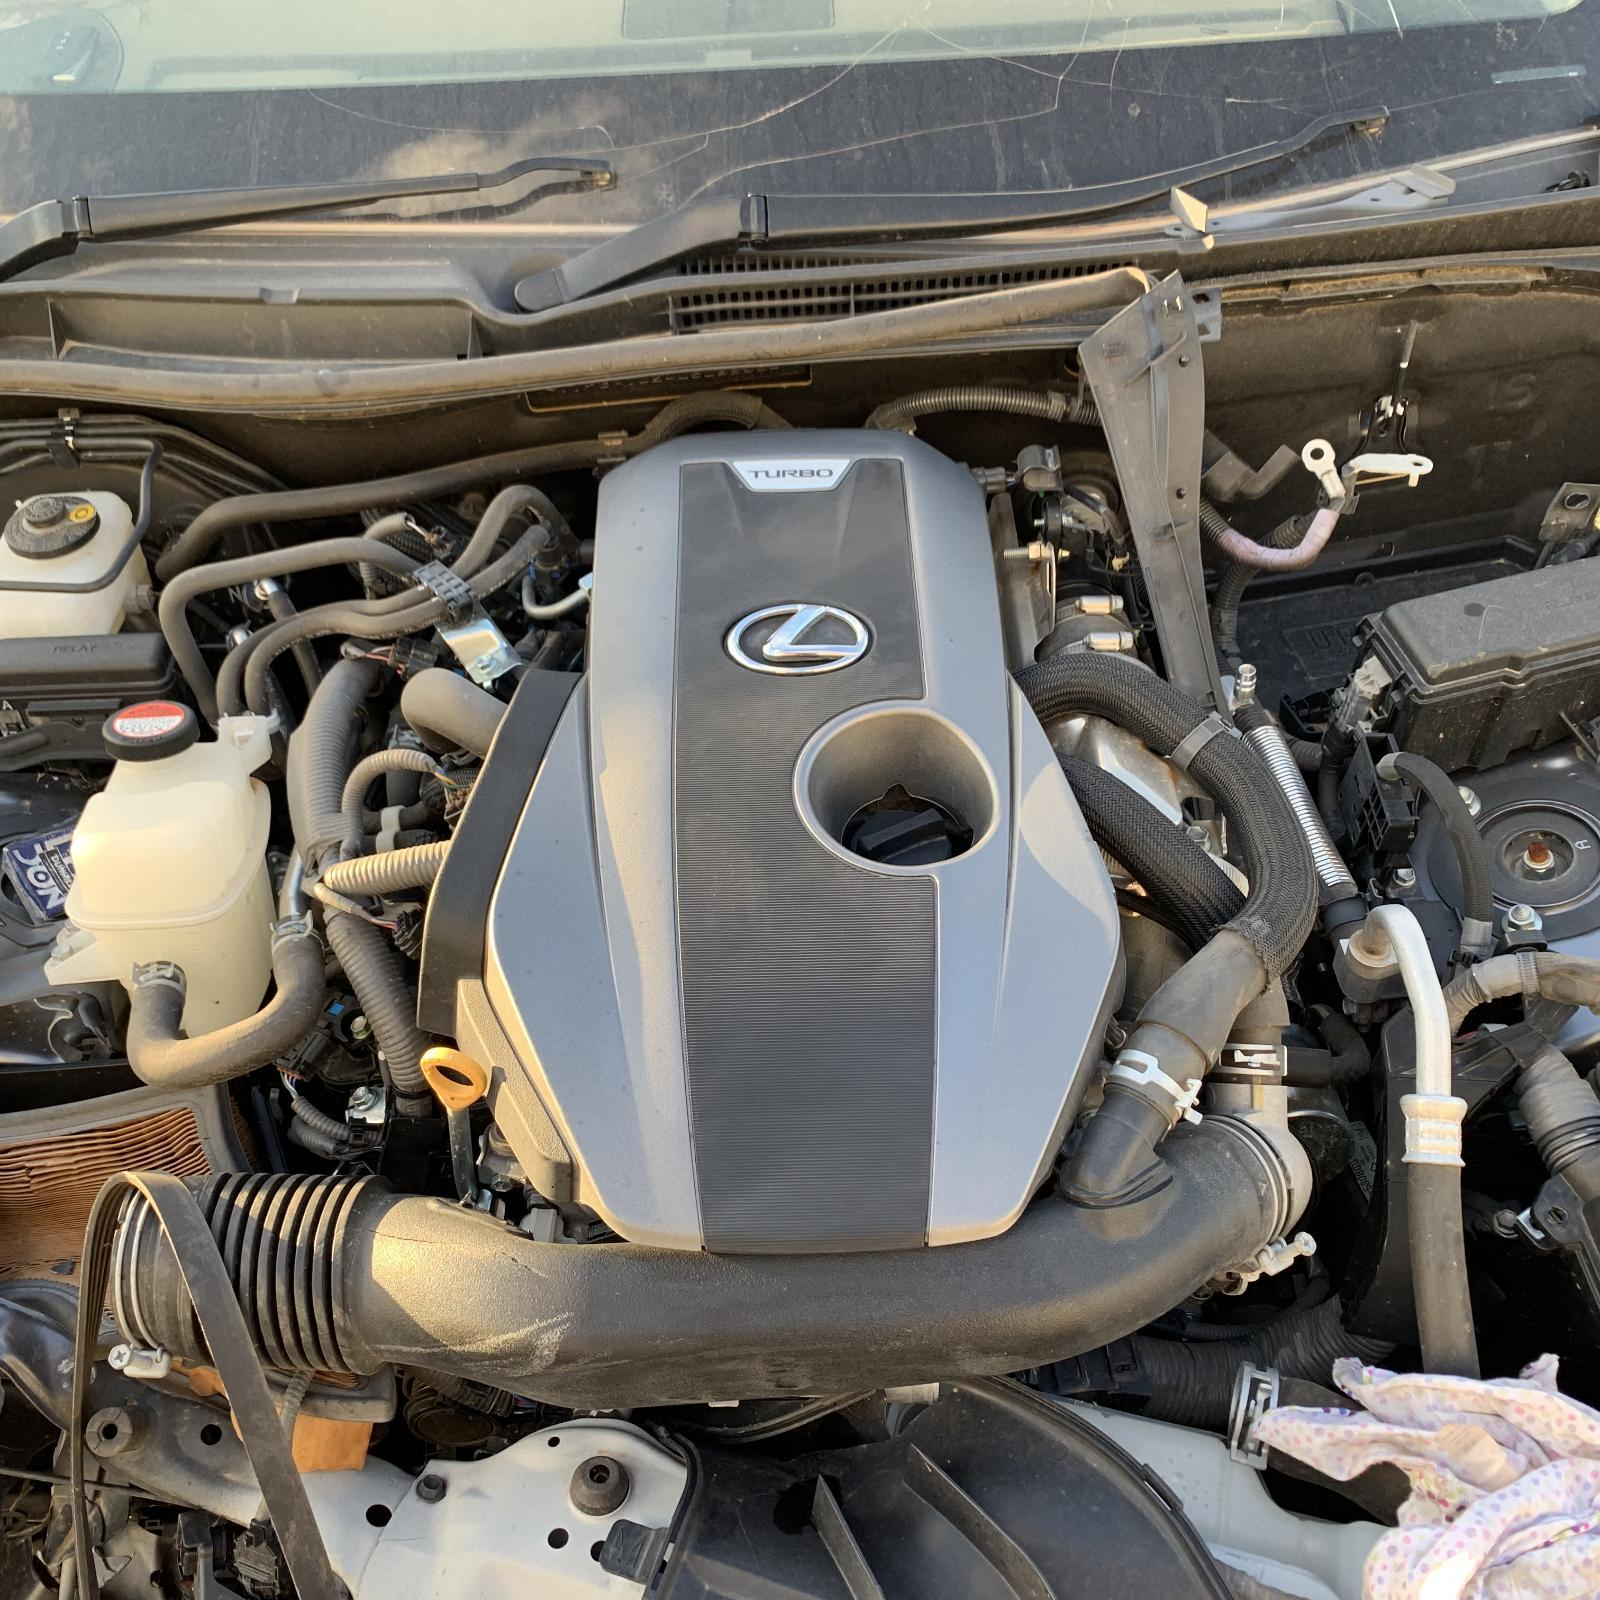 LEXUS IS SERIES, Engine, IS200t, PETROL, 2.0, 8AR-FTS, TURBO, ASE30R, 09/15-